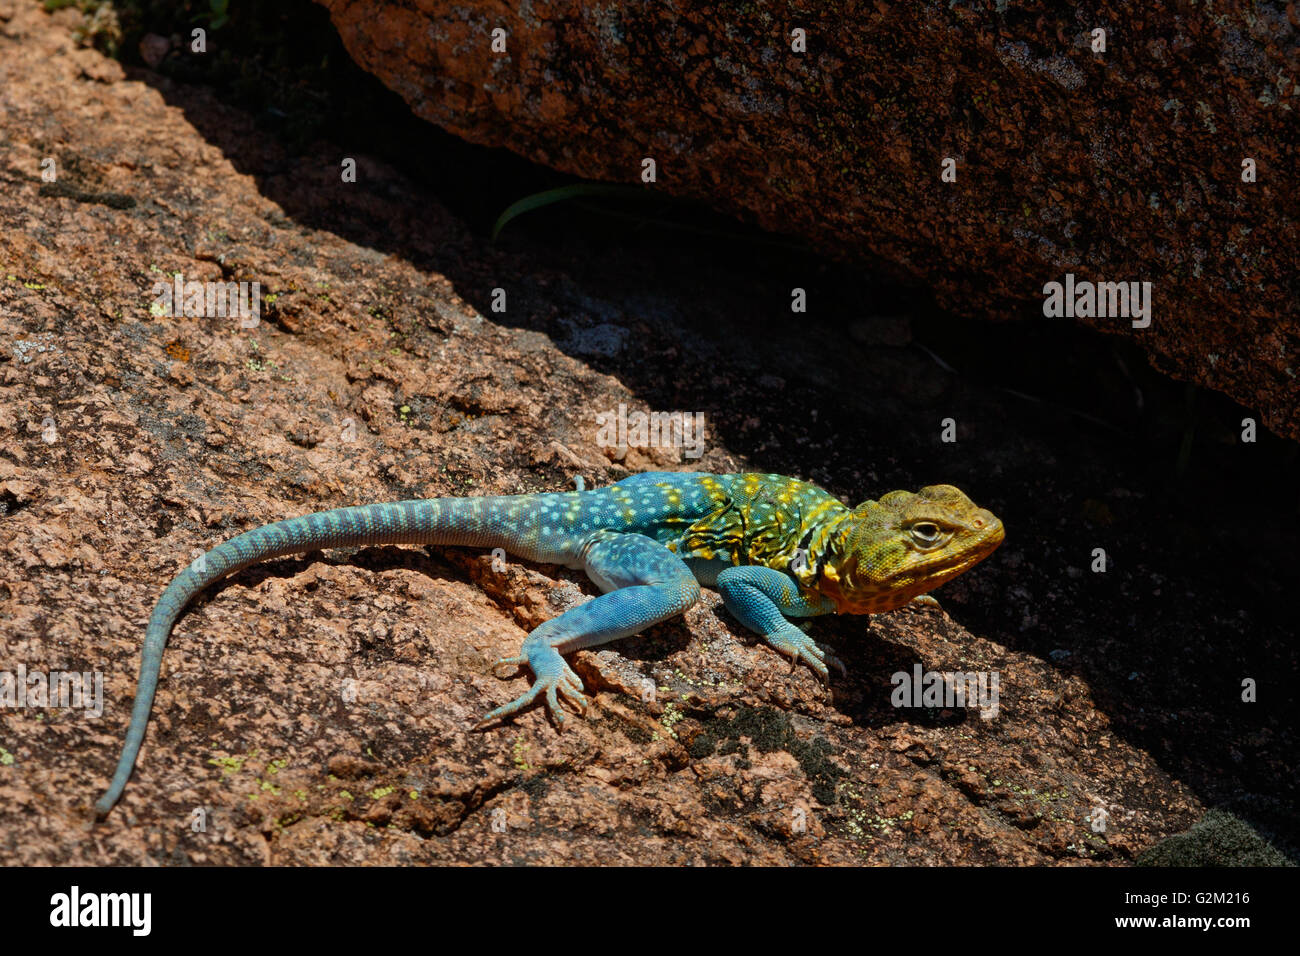 A bright turqouise Mountain Boomer (Collared Lizard) in the rocks of the Wichita Mountains in SW Oklahoma. Stock Photo